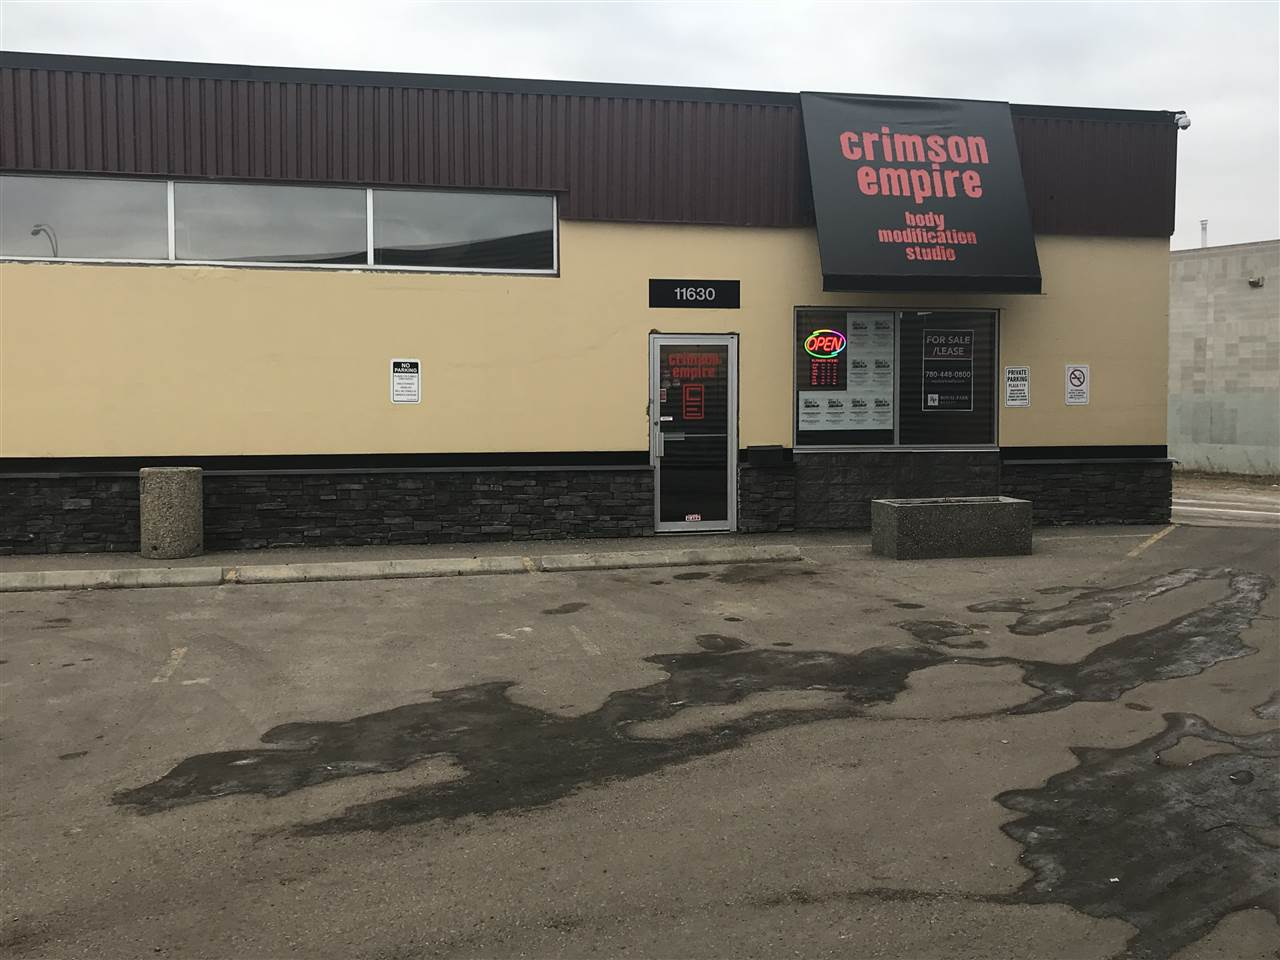 Main Photo: Unit 4 11630 119 Street in Edmonton: Zone 08 Retail for sale : MLS® # E4091200